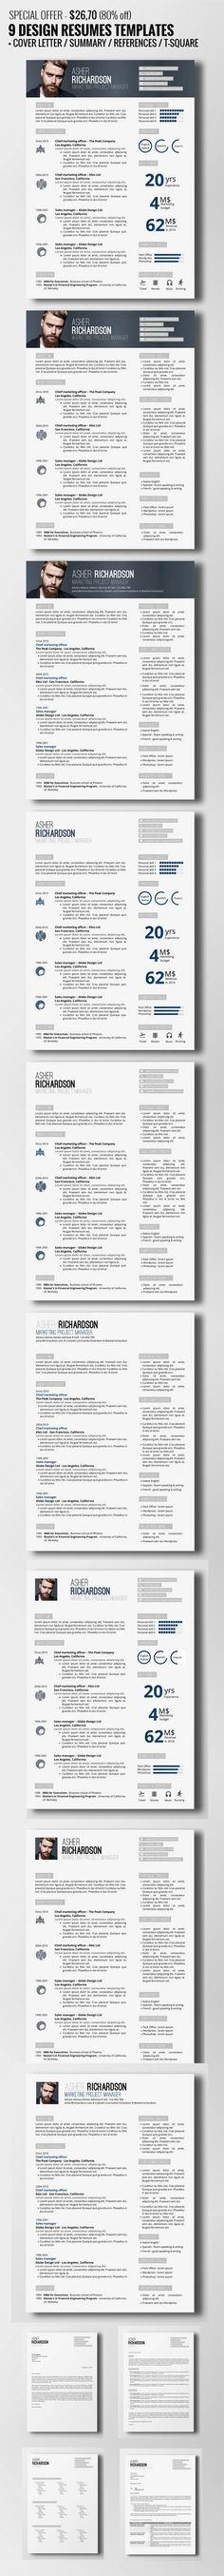 435 best Resume images on Pinterest Resume design, Design resume - harvard style resume